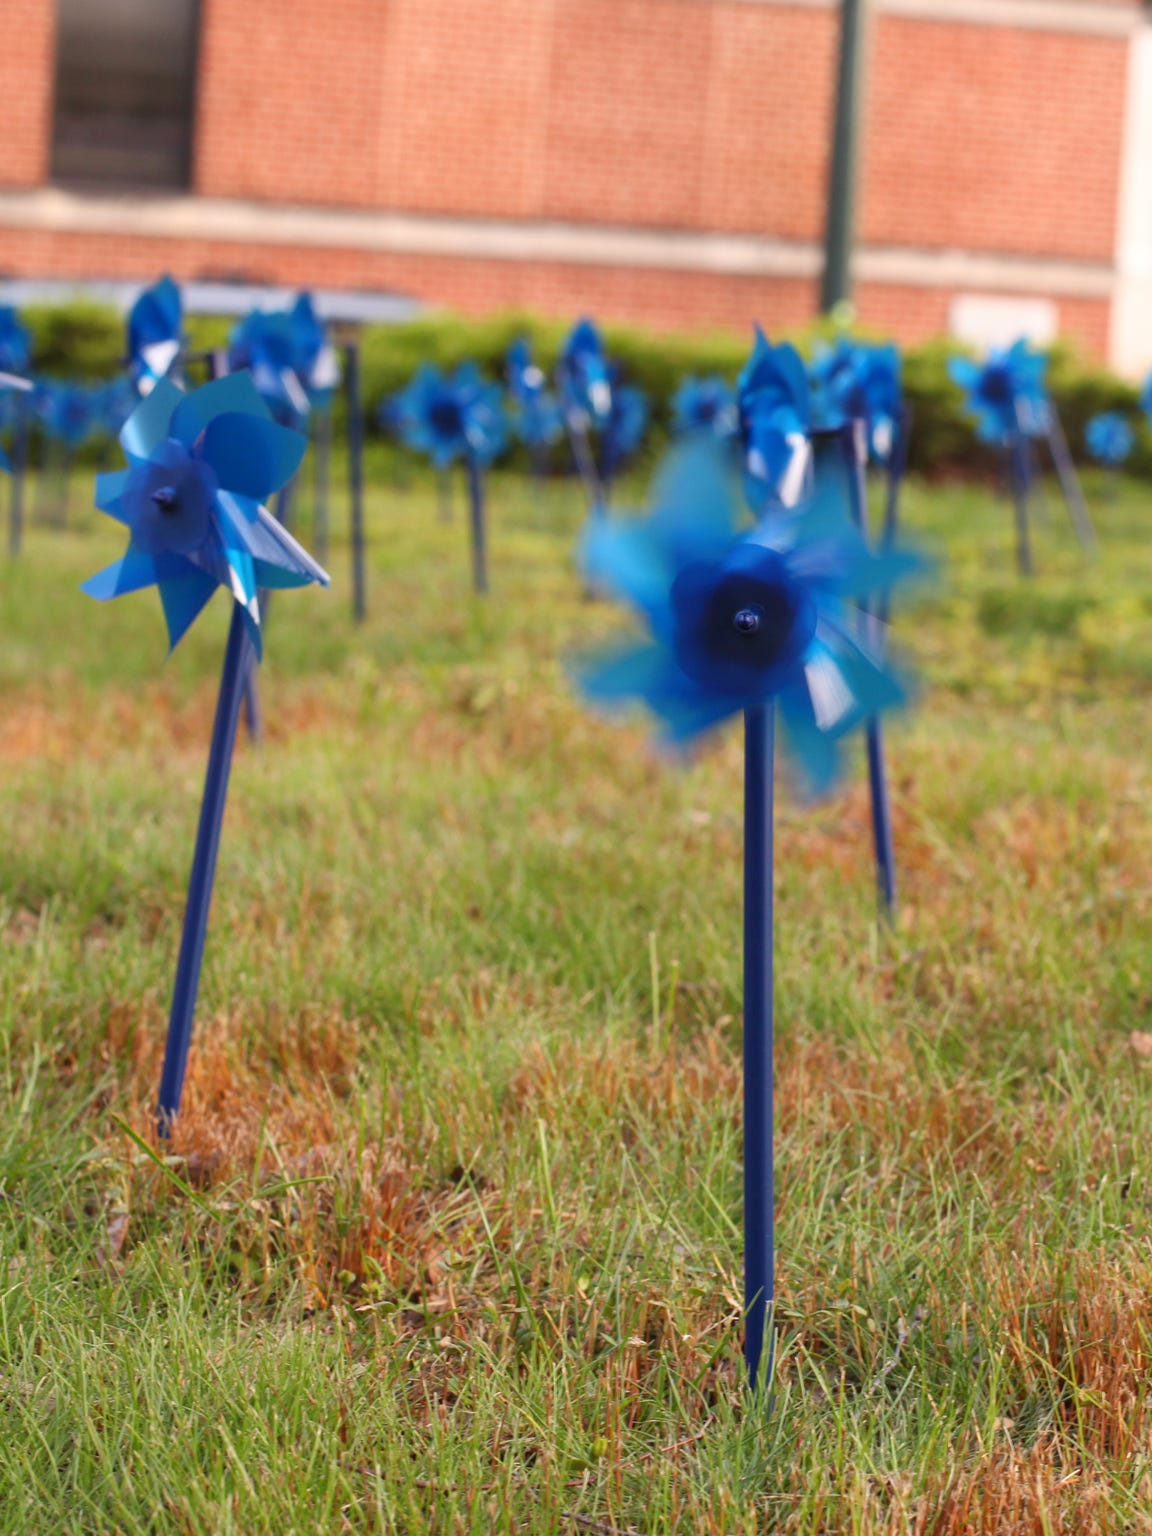 Pinwheels were placed on the lawn of the Augusta County Courthouse in Staunton on April 11 to represent the 182 local children, victims of physical and sexual abuse and neglect, who are helped on average each year by the Valley Children's Advocacy Center.